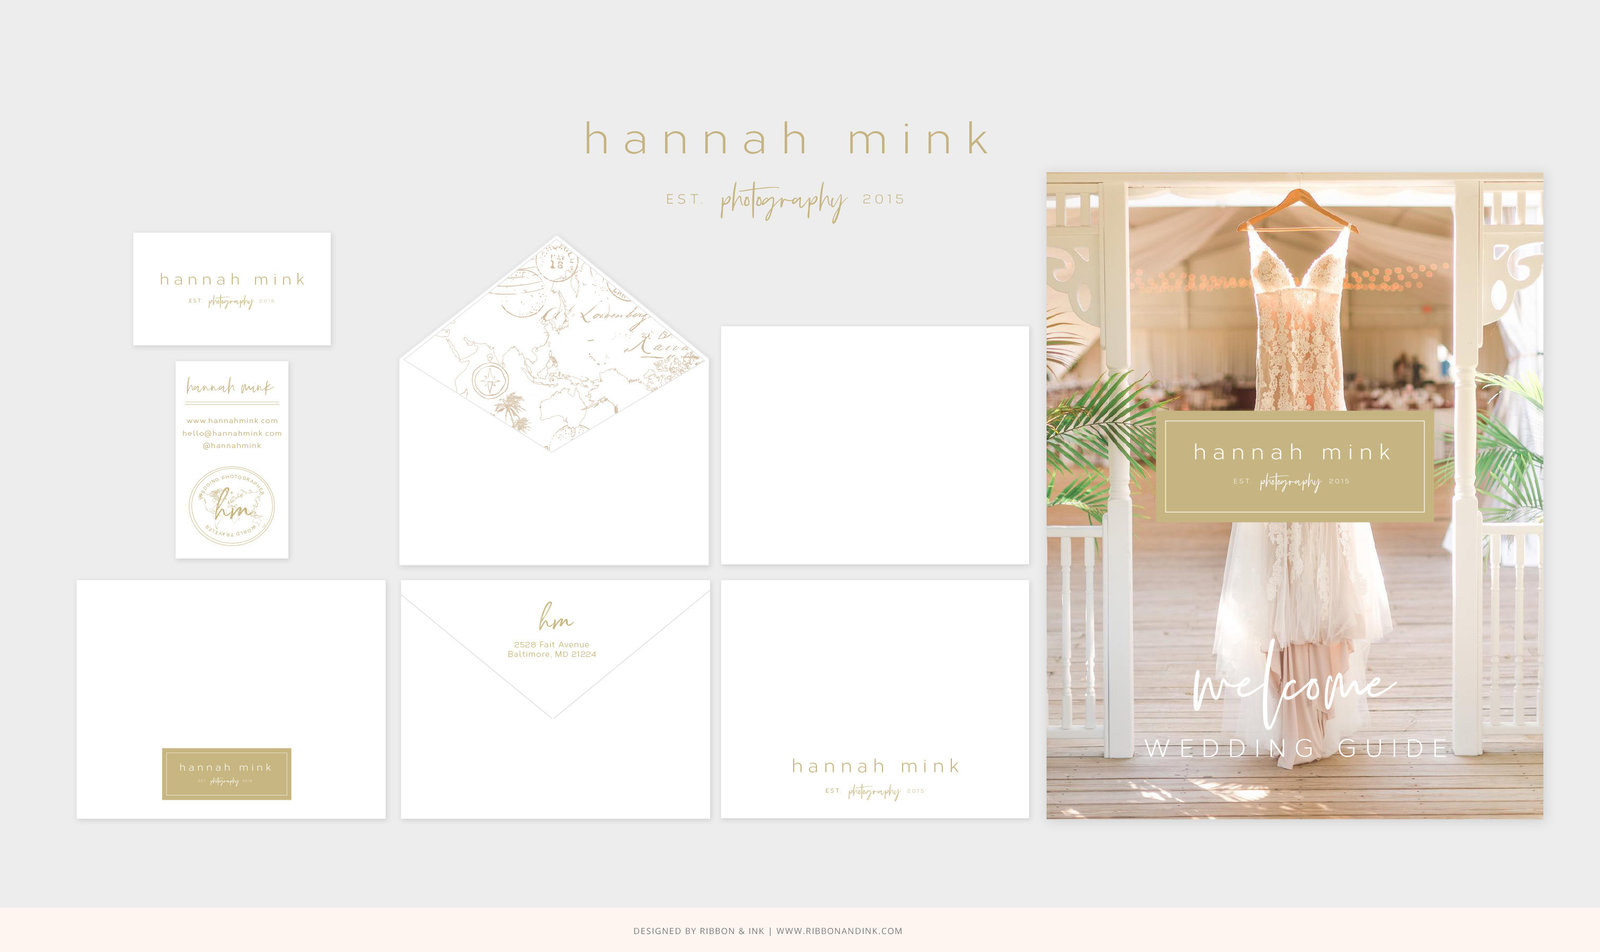 HannahMink_Stationery_v01